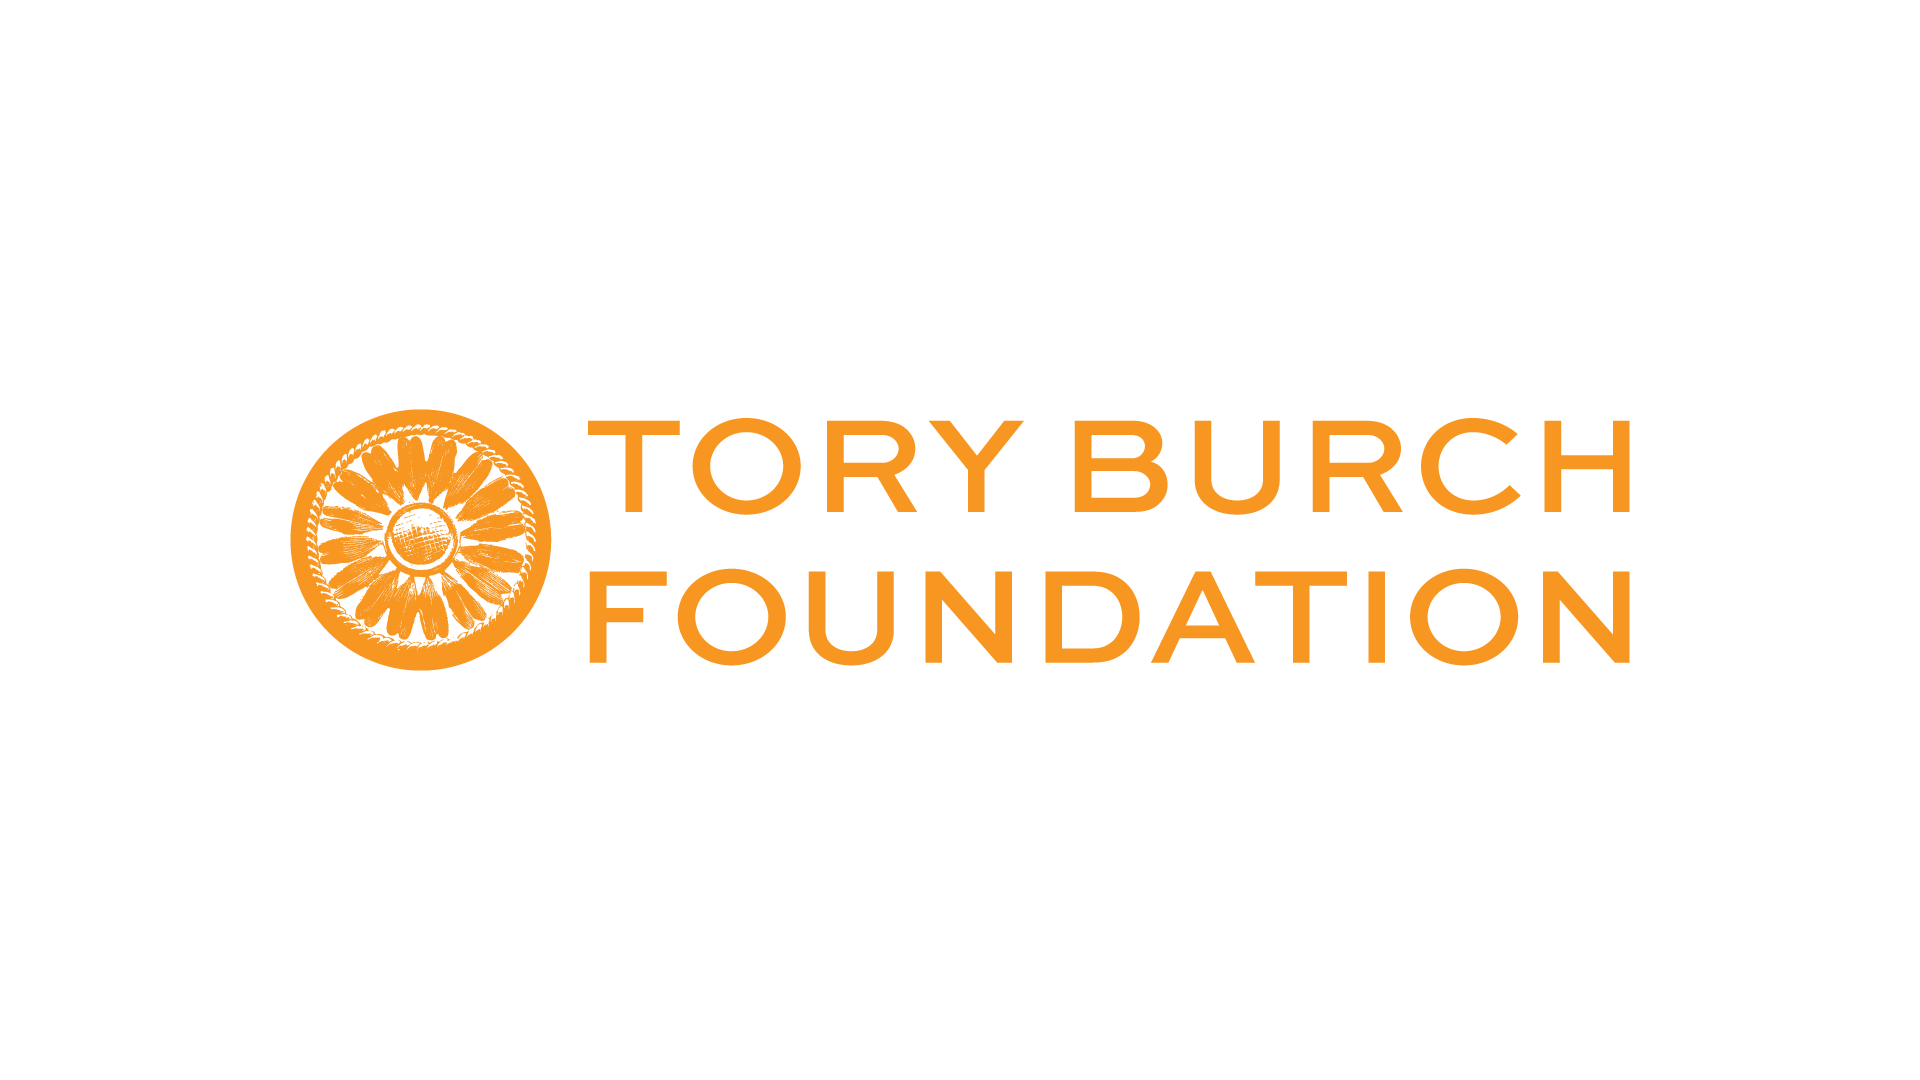 8f0fef08e8a0 Tory Burch Foundation Rings the NYSE Opening Bell®